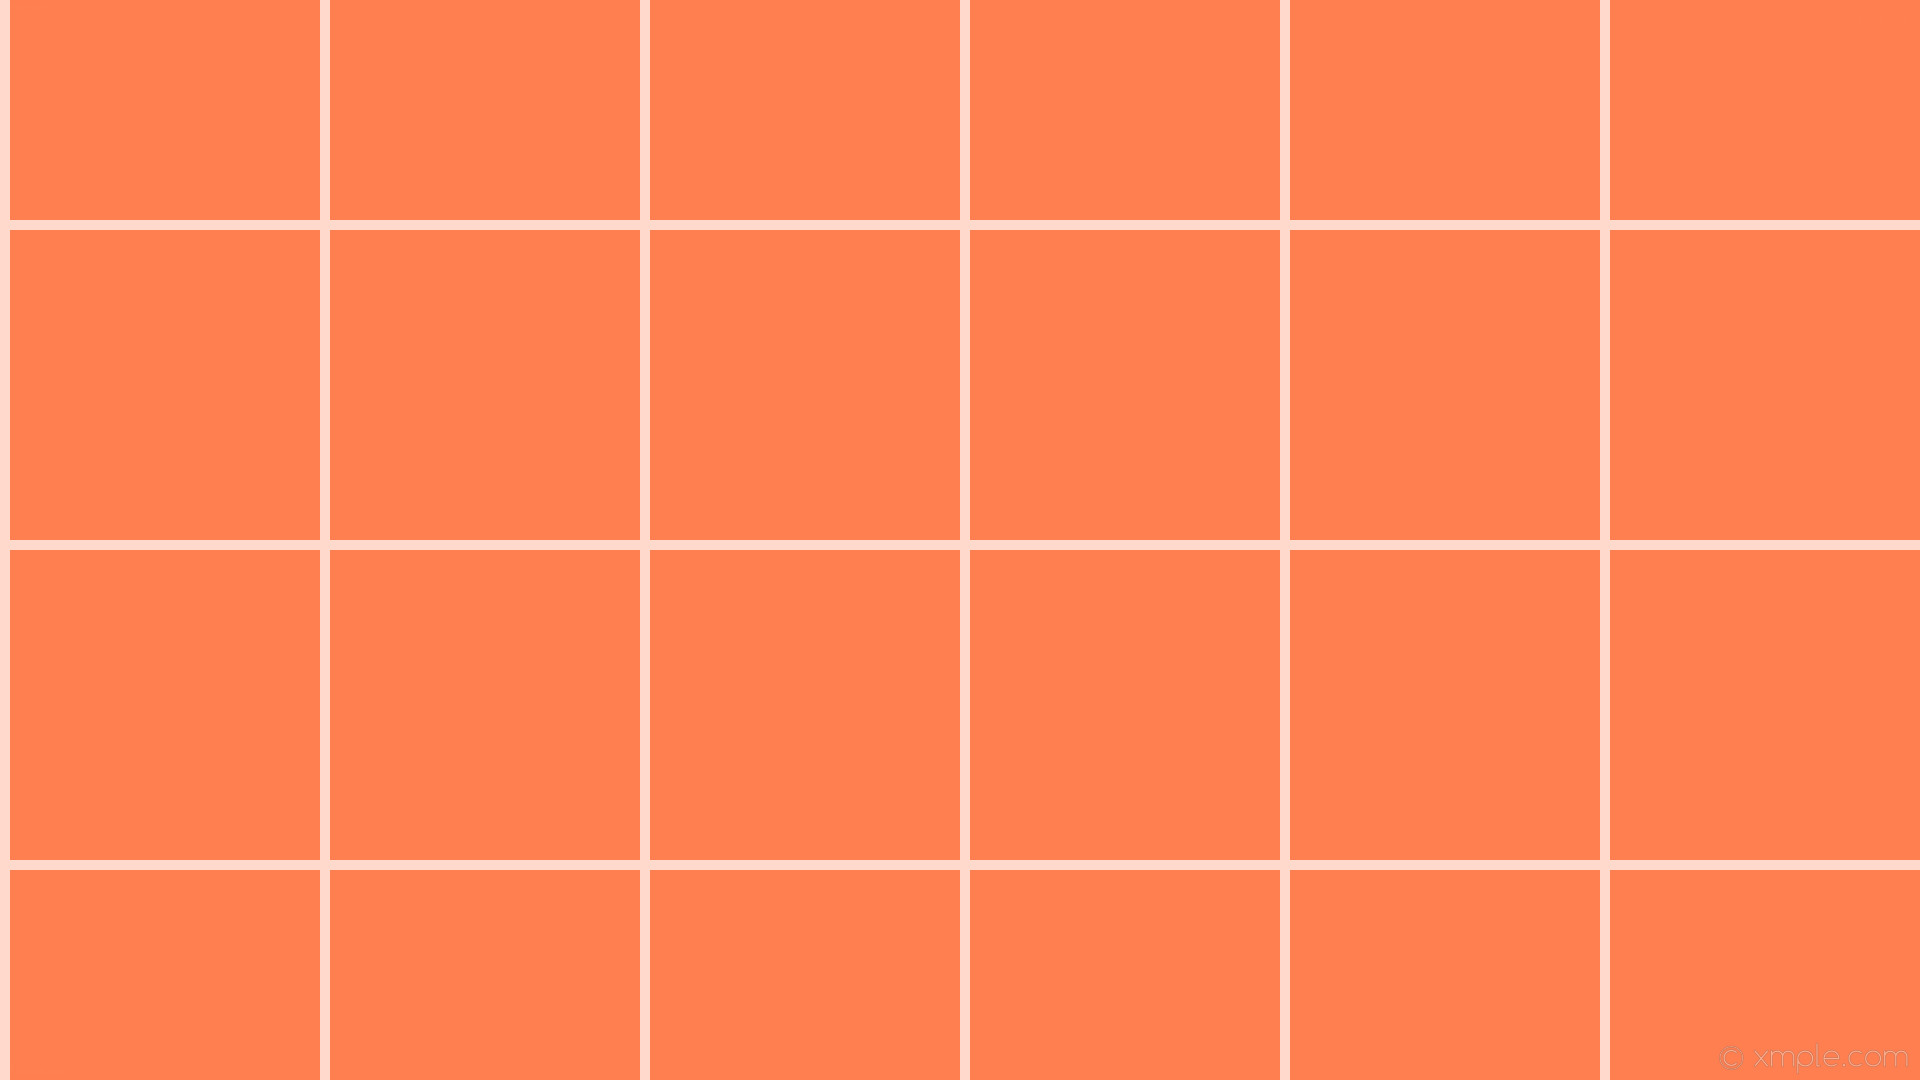 1920x1080 wallpaper white orange grid graph paper coral #ff7f50 #ffffff 0° 10px 320px